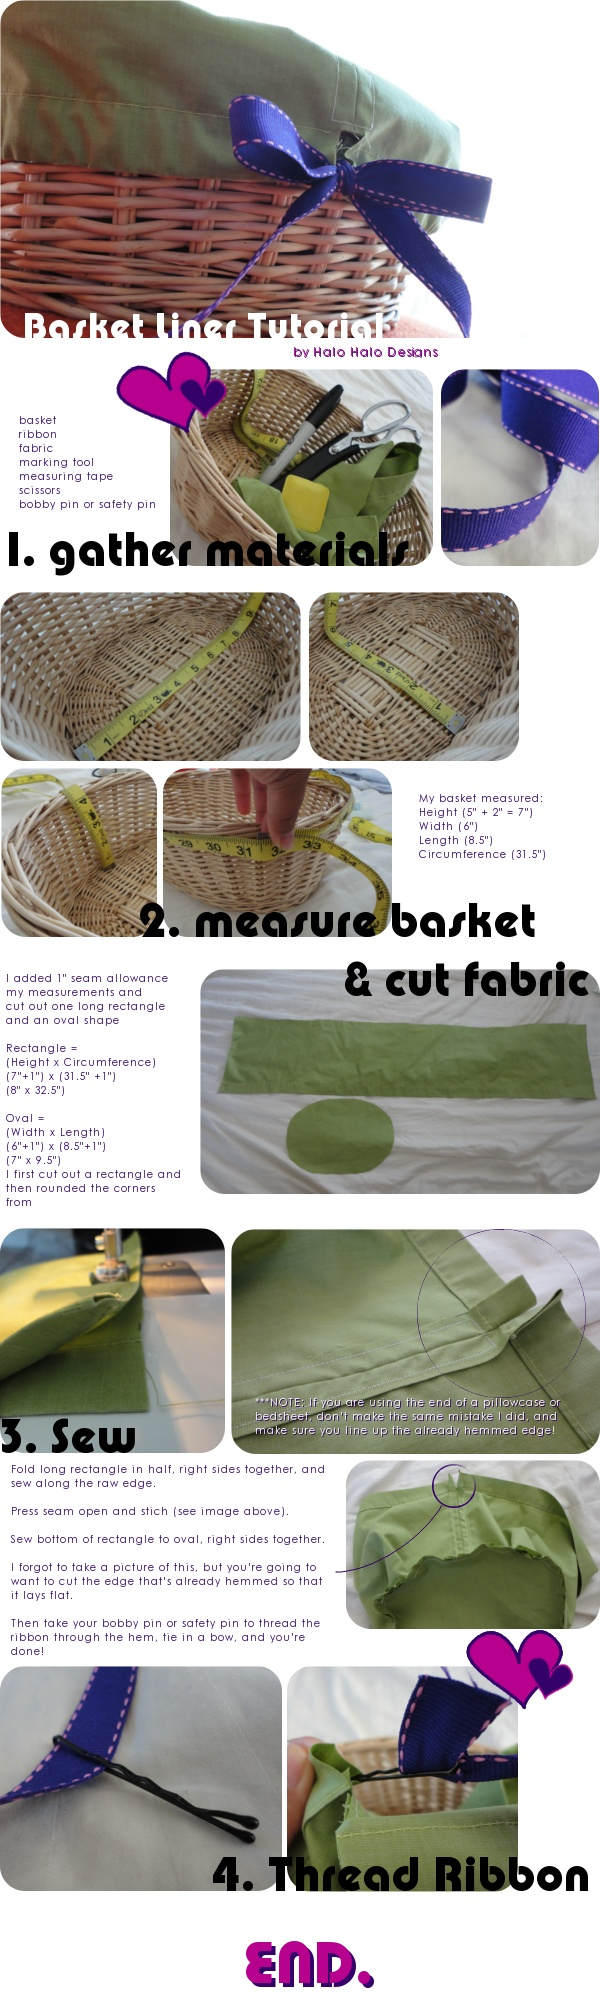 [TUTORIAL] Old Bedsheet to Basket Liner - HOME SWEET HOME